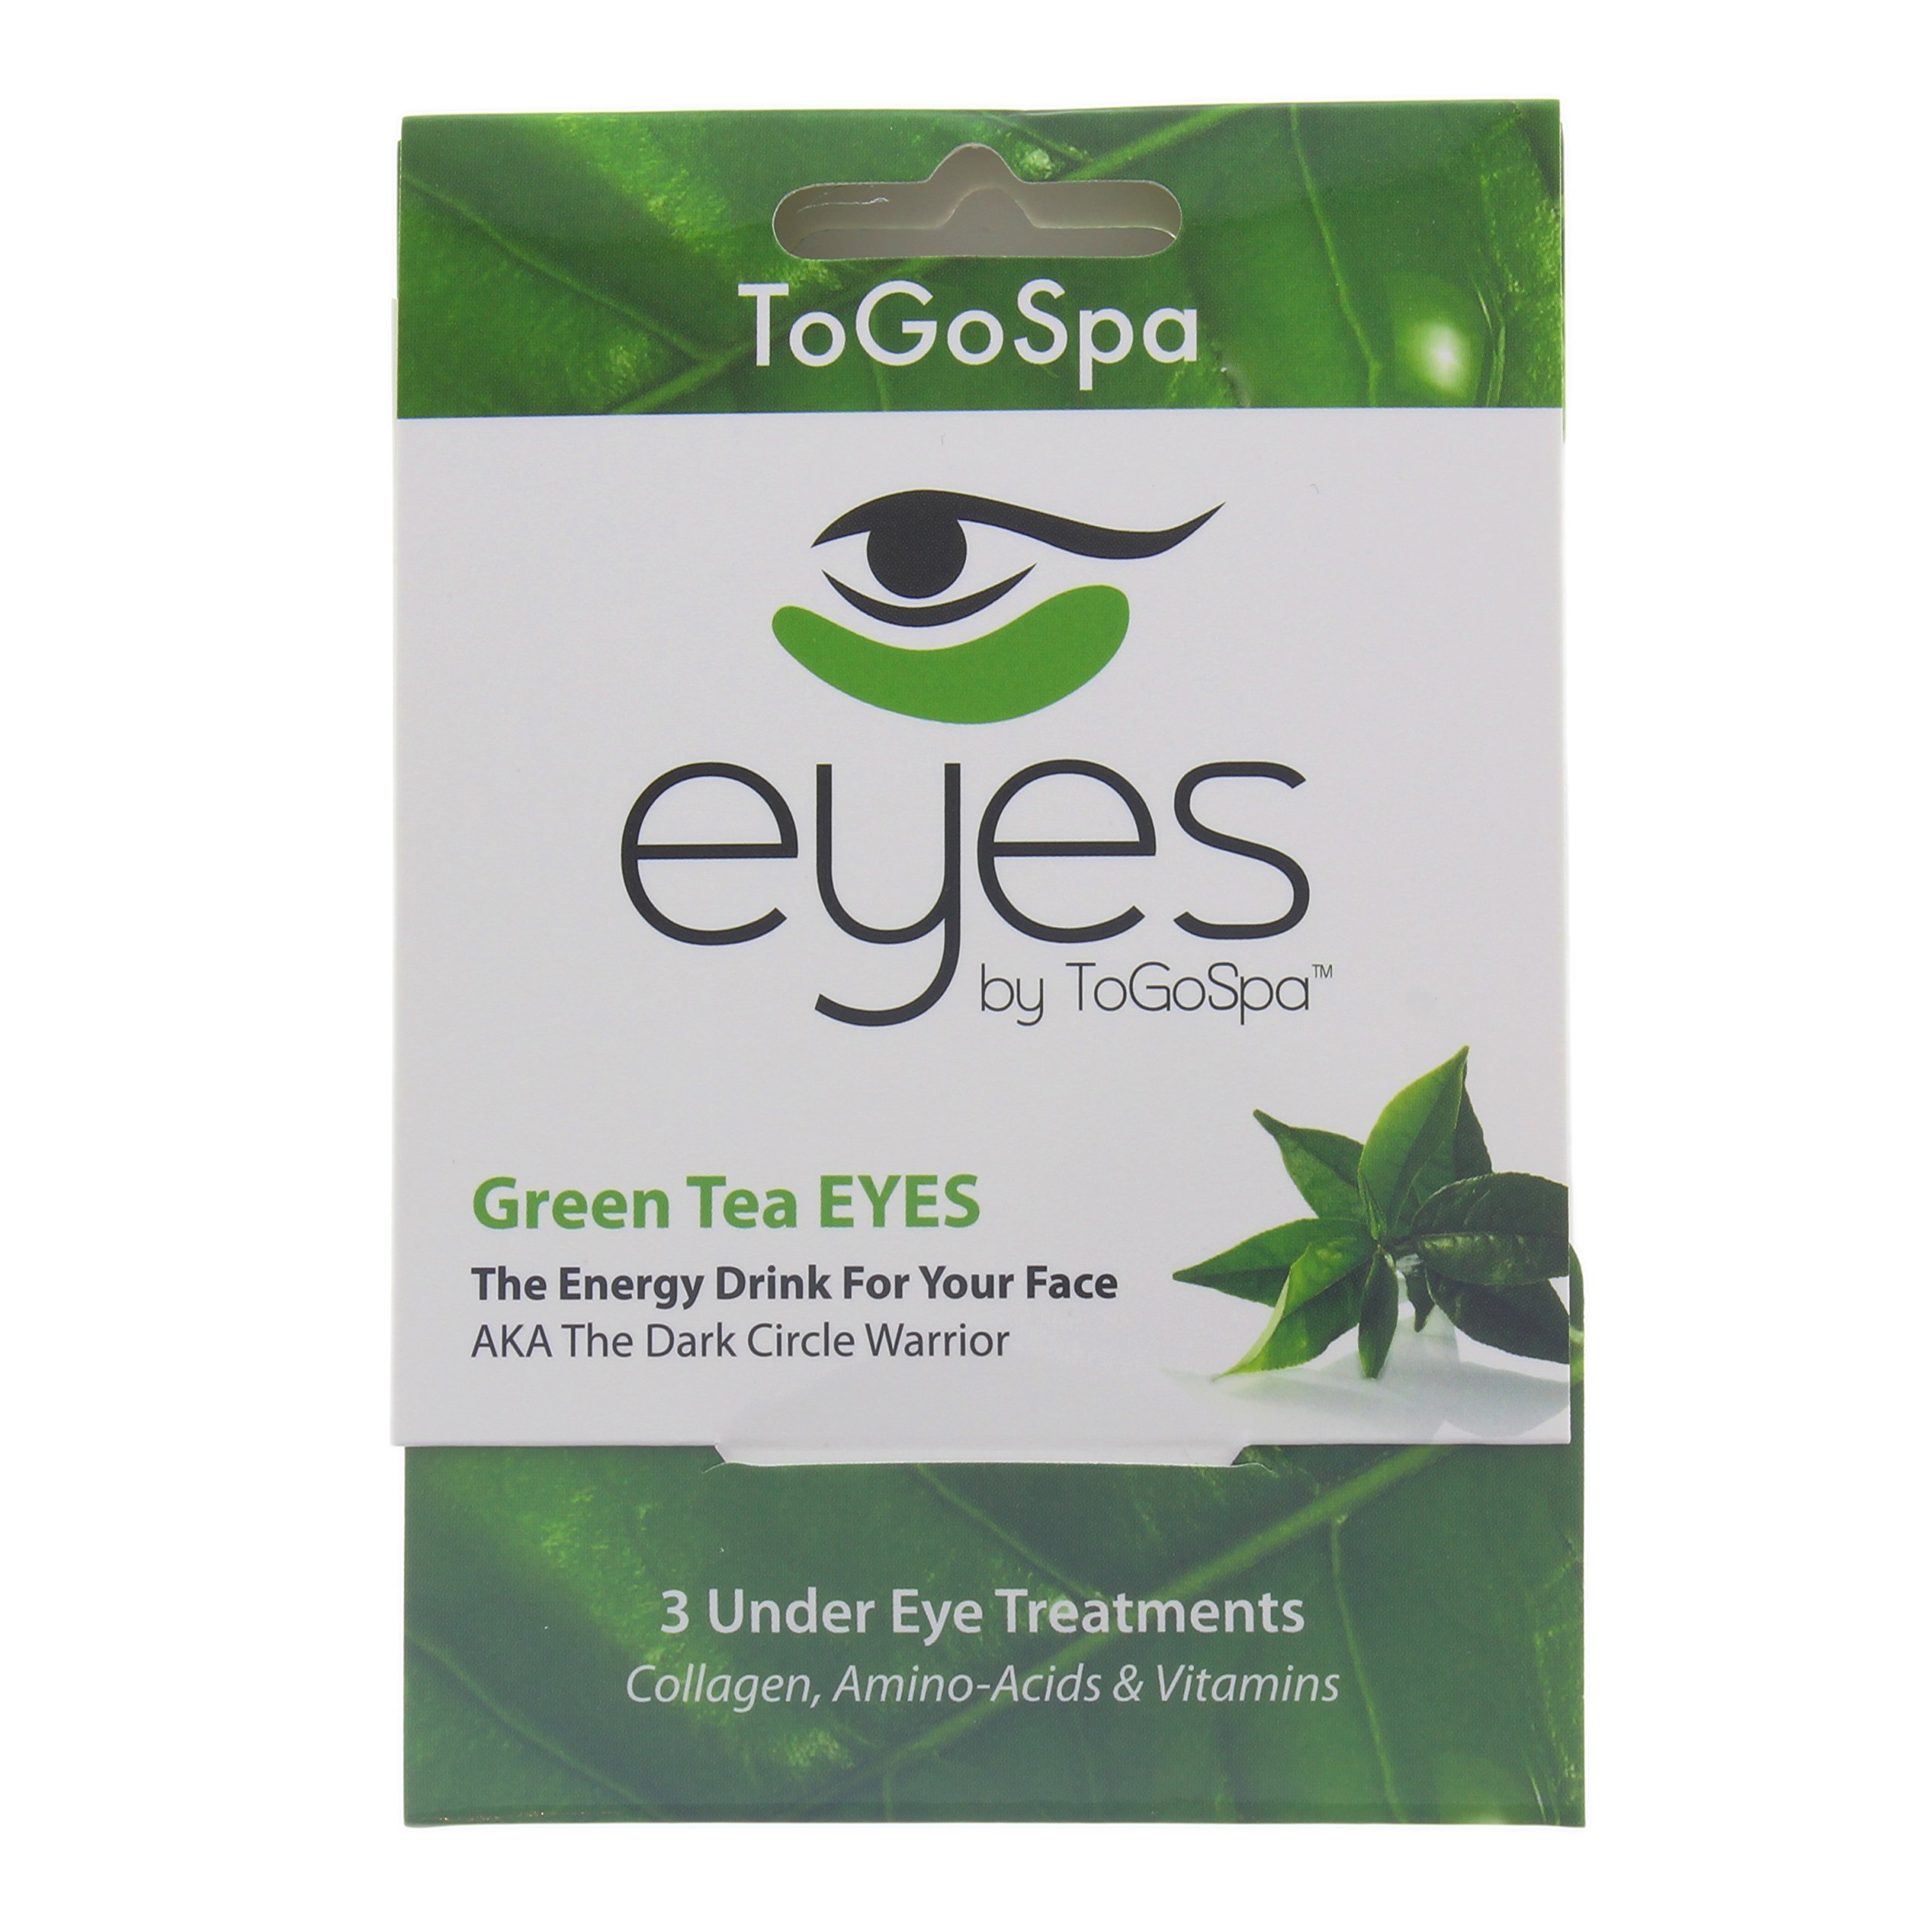 Green Tea EYES by ToGoSpa – Premium Anti-Aging Collagen Gel Pads for Puffiness, Dark Circles, and Wrinkles – Under Eye Rejuvenation for Men & Women - 10 Pack – 30 Treatments by ToGoSpa (Image #4)